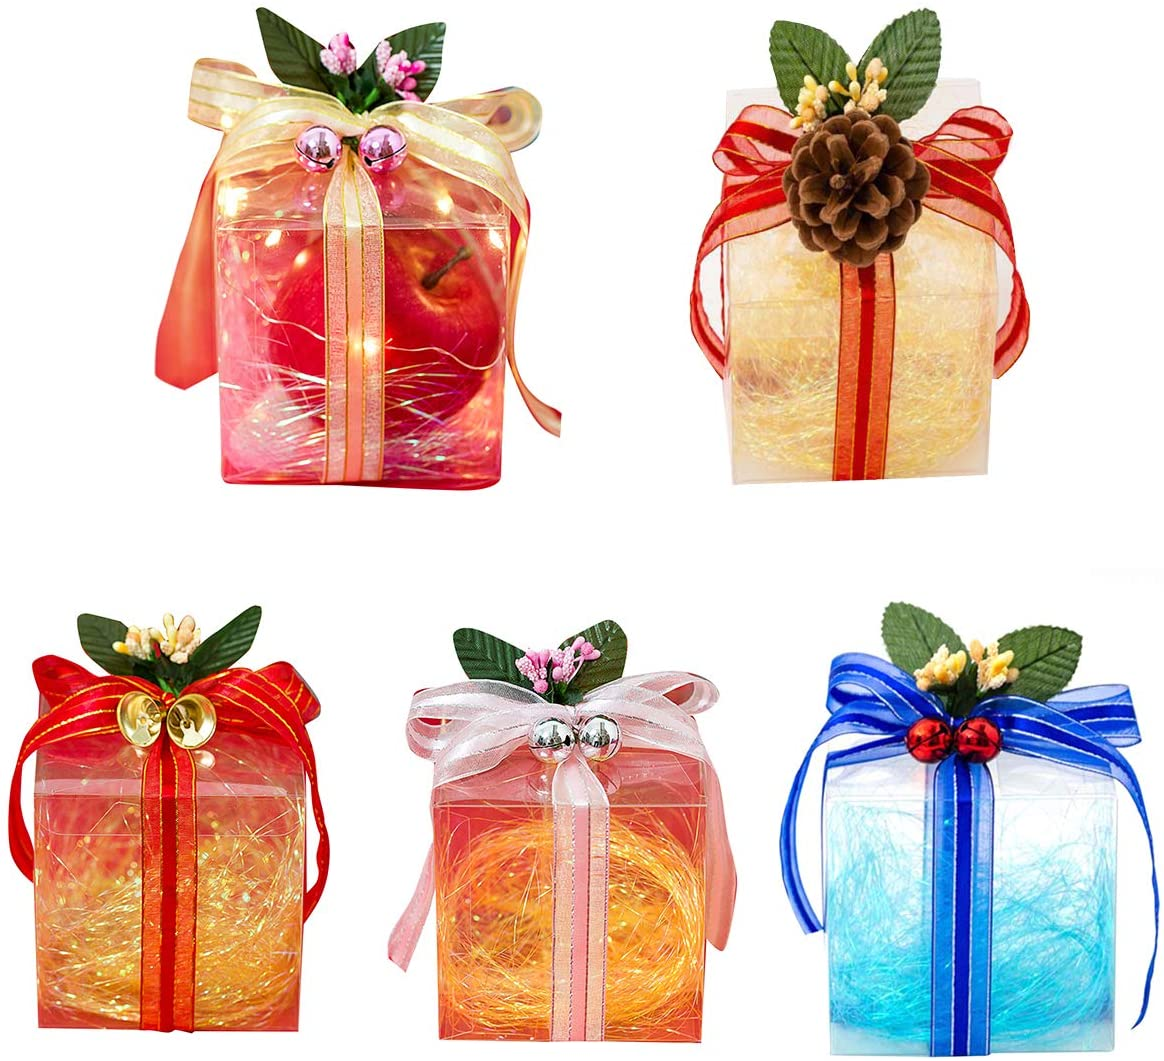 iFCOW Gift Treat Boxes, 10pcs DIY Gift Treat Boxes with Ribbons Transparent Chocolate Candy Box for Party Wedding Christmas 3.94x3.94x3.94in